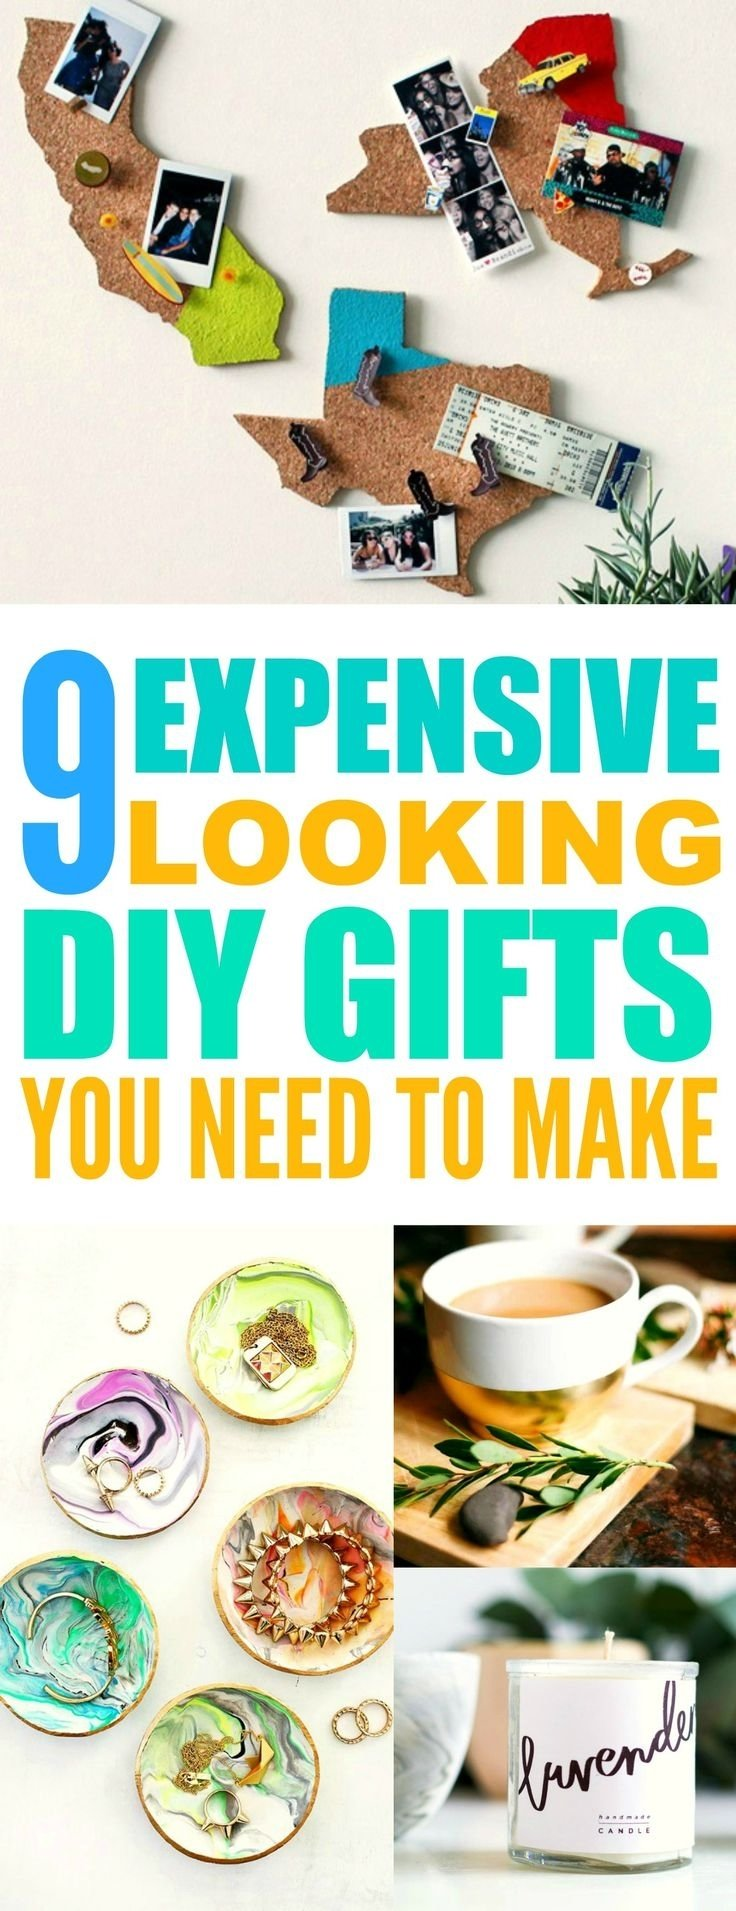 10 Spectacular Homemade Gift Ideas For Girls 31 cheap and easy last minute diy gifts theyll actually want easy 2021